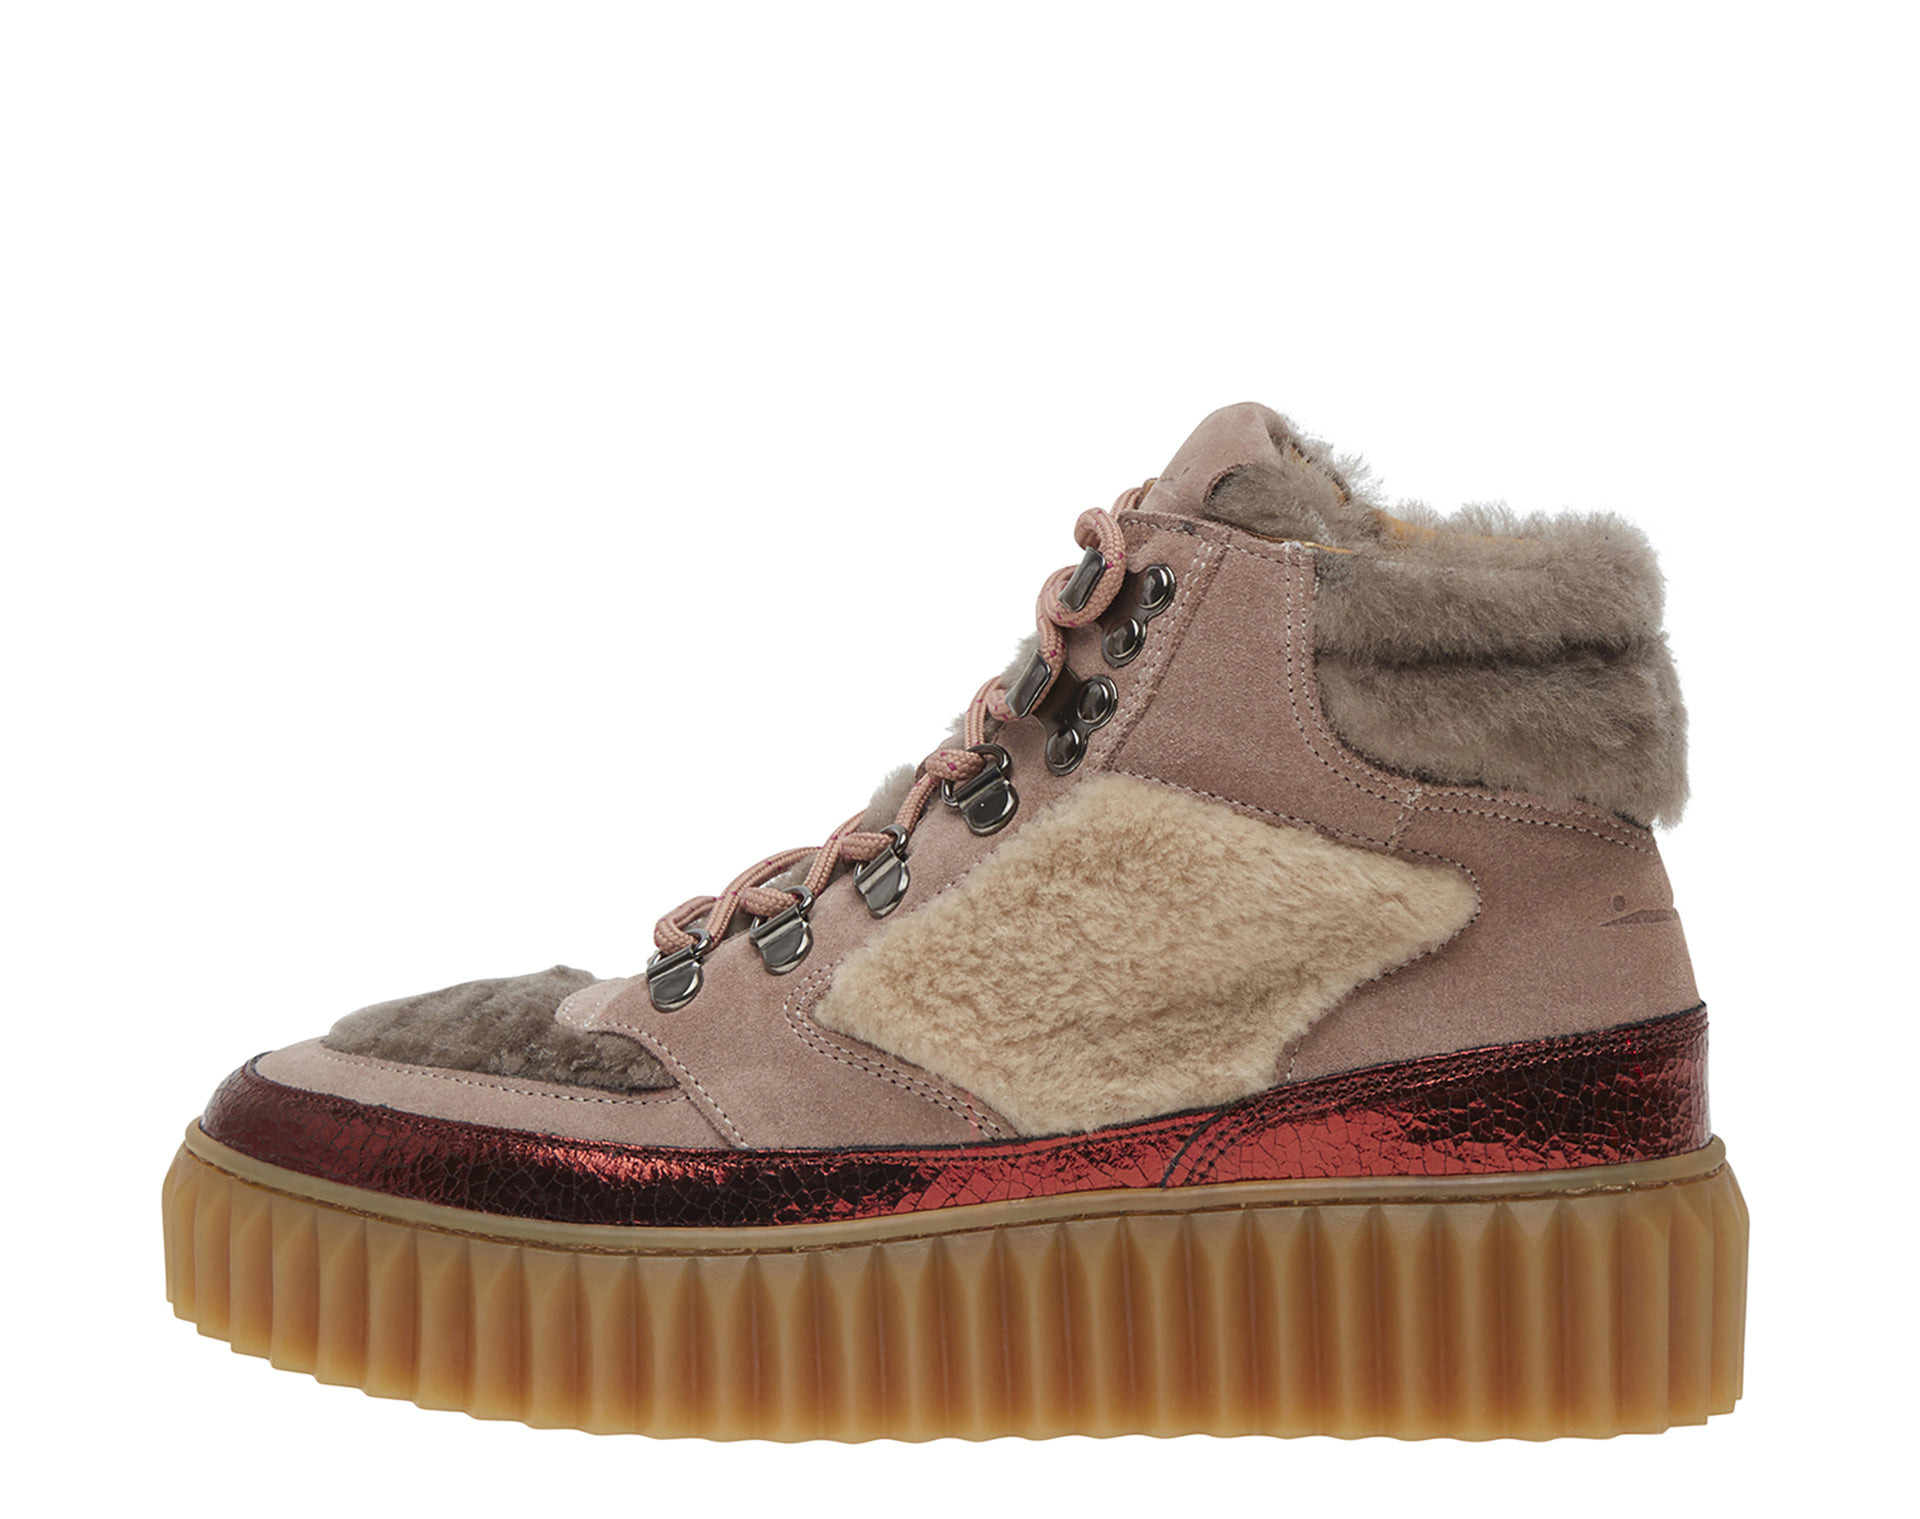 EVA HIKE - SNEAKERS IN PELLE, VELOUR E SHEARLING - CIPRIA